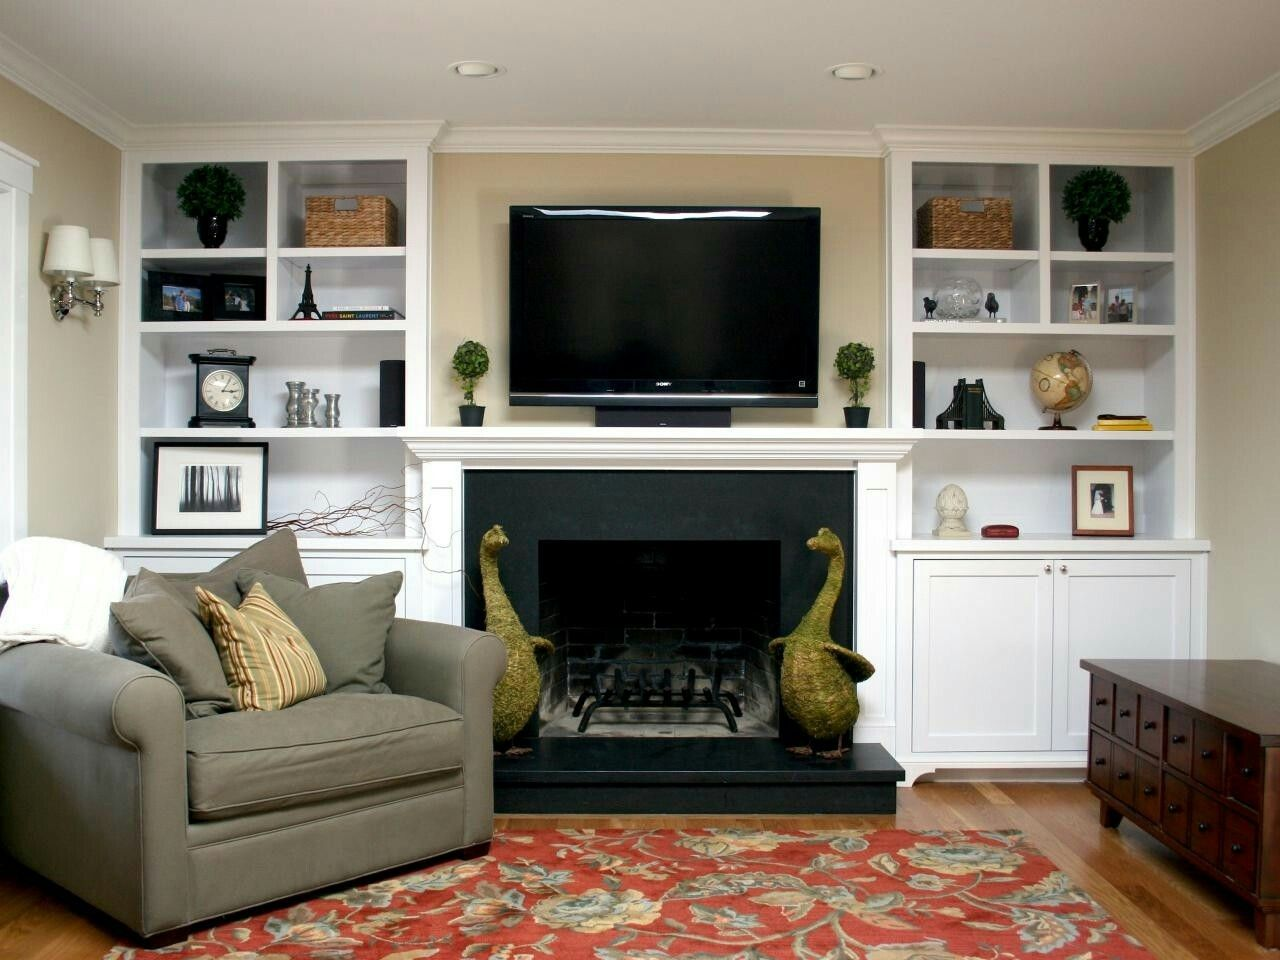 Simple White Built In Bookshelves With Lower Cabinets For